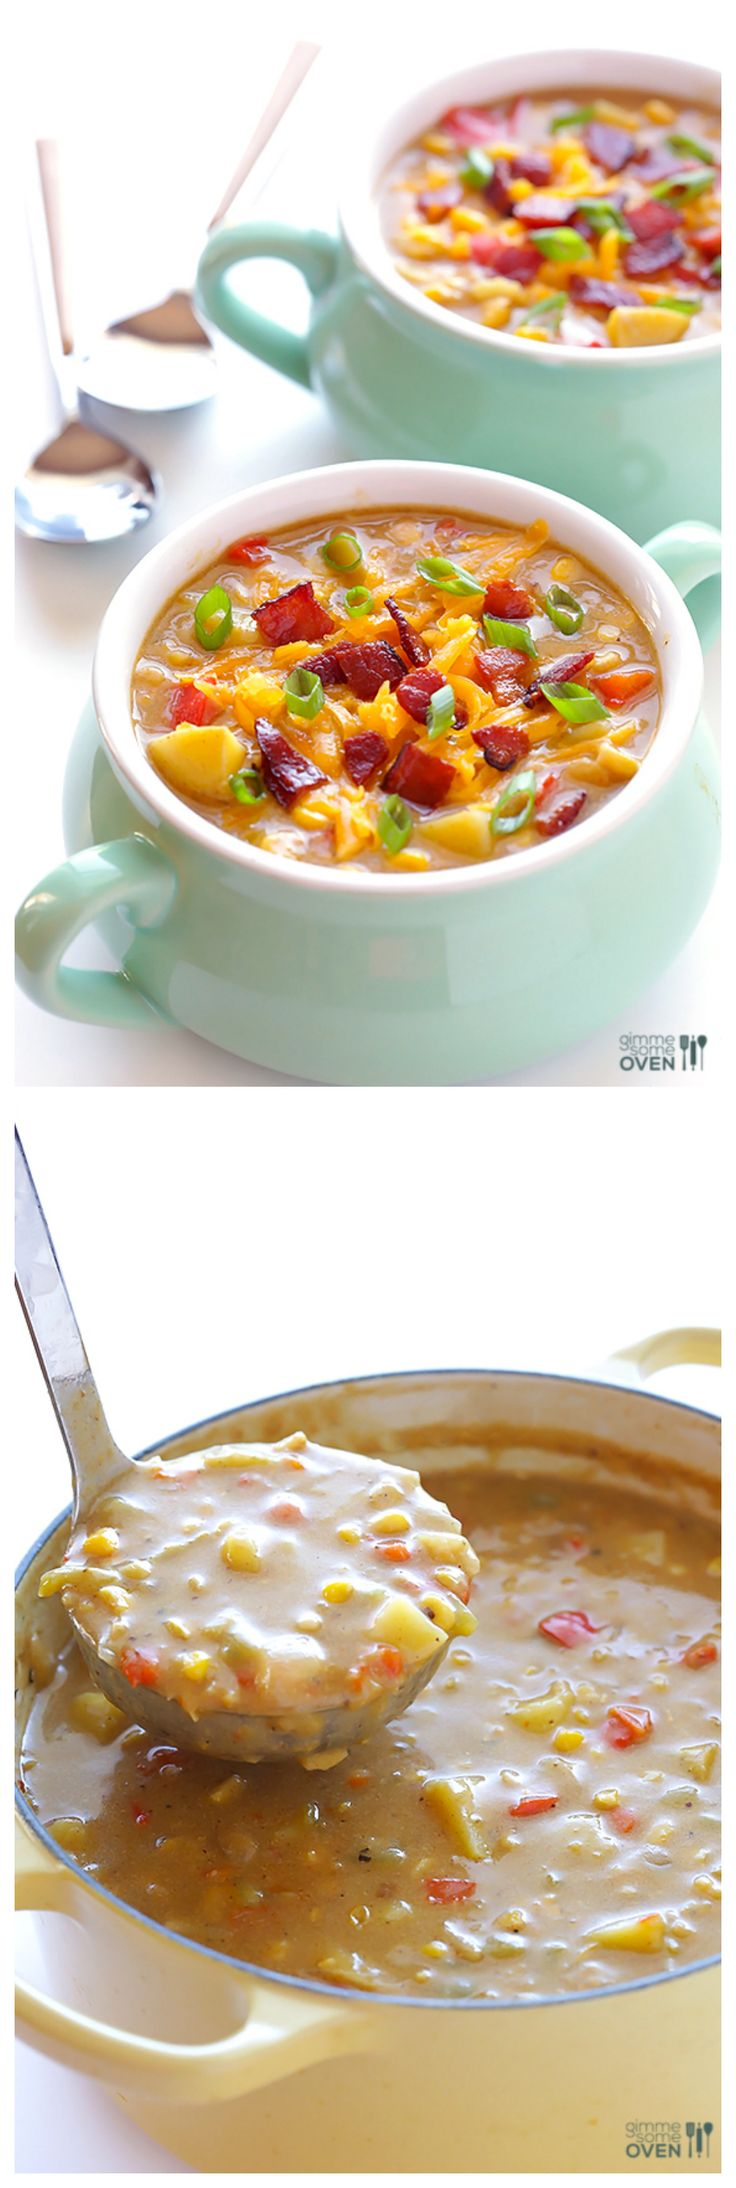 Bacon Corn Chowder -- made with fresh or canned corn, and so comforting and delicious | gimmesomeoven.com #soup #recipe